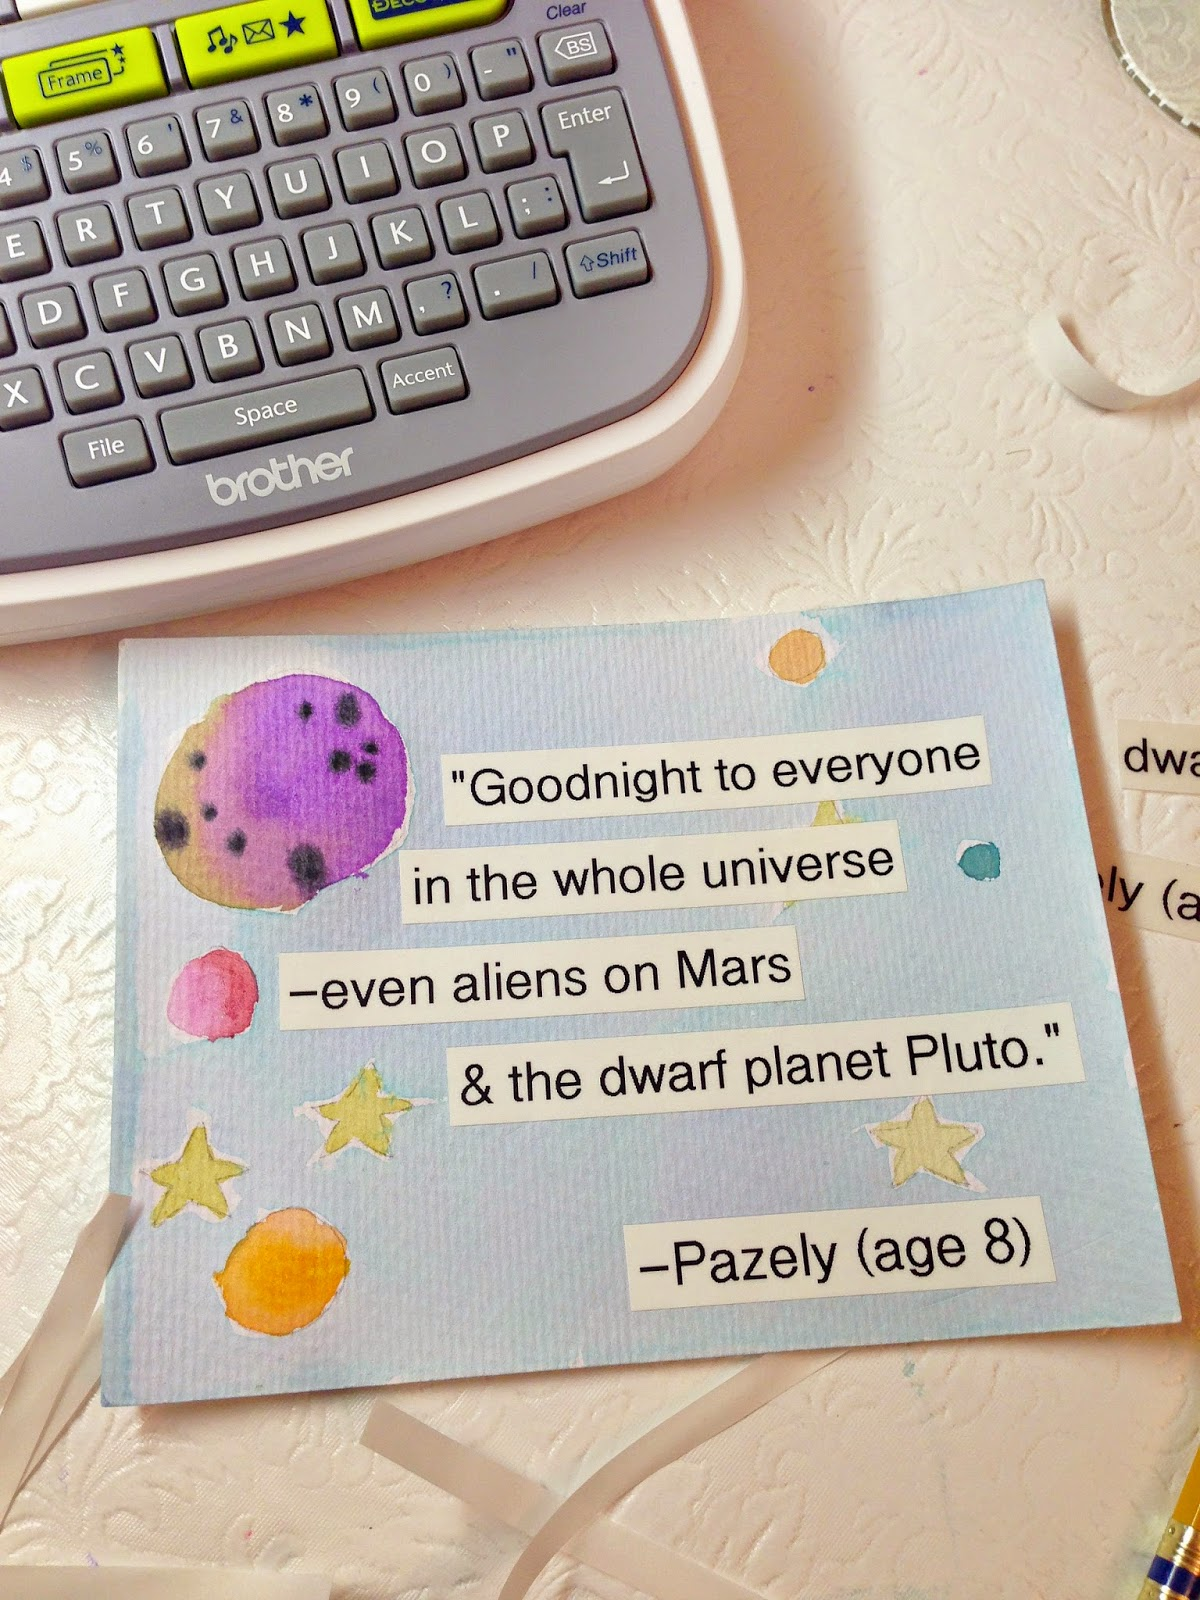 WhiMSy love: DIY: Label Quote Art with Brother P-Touch Label